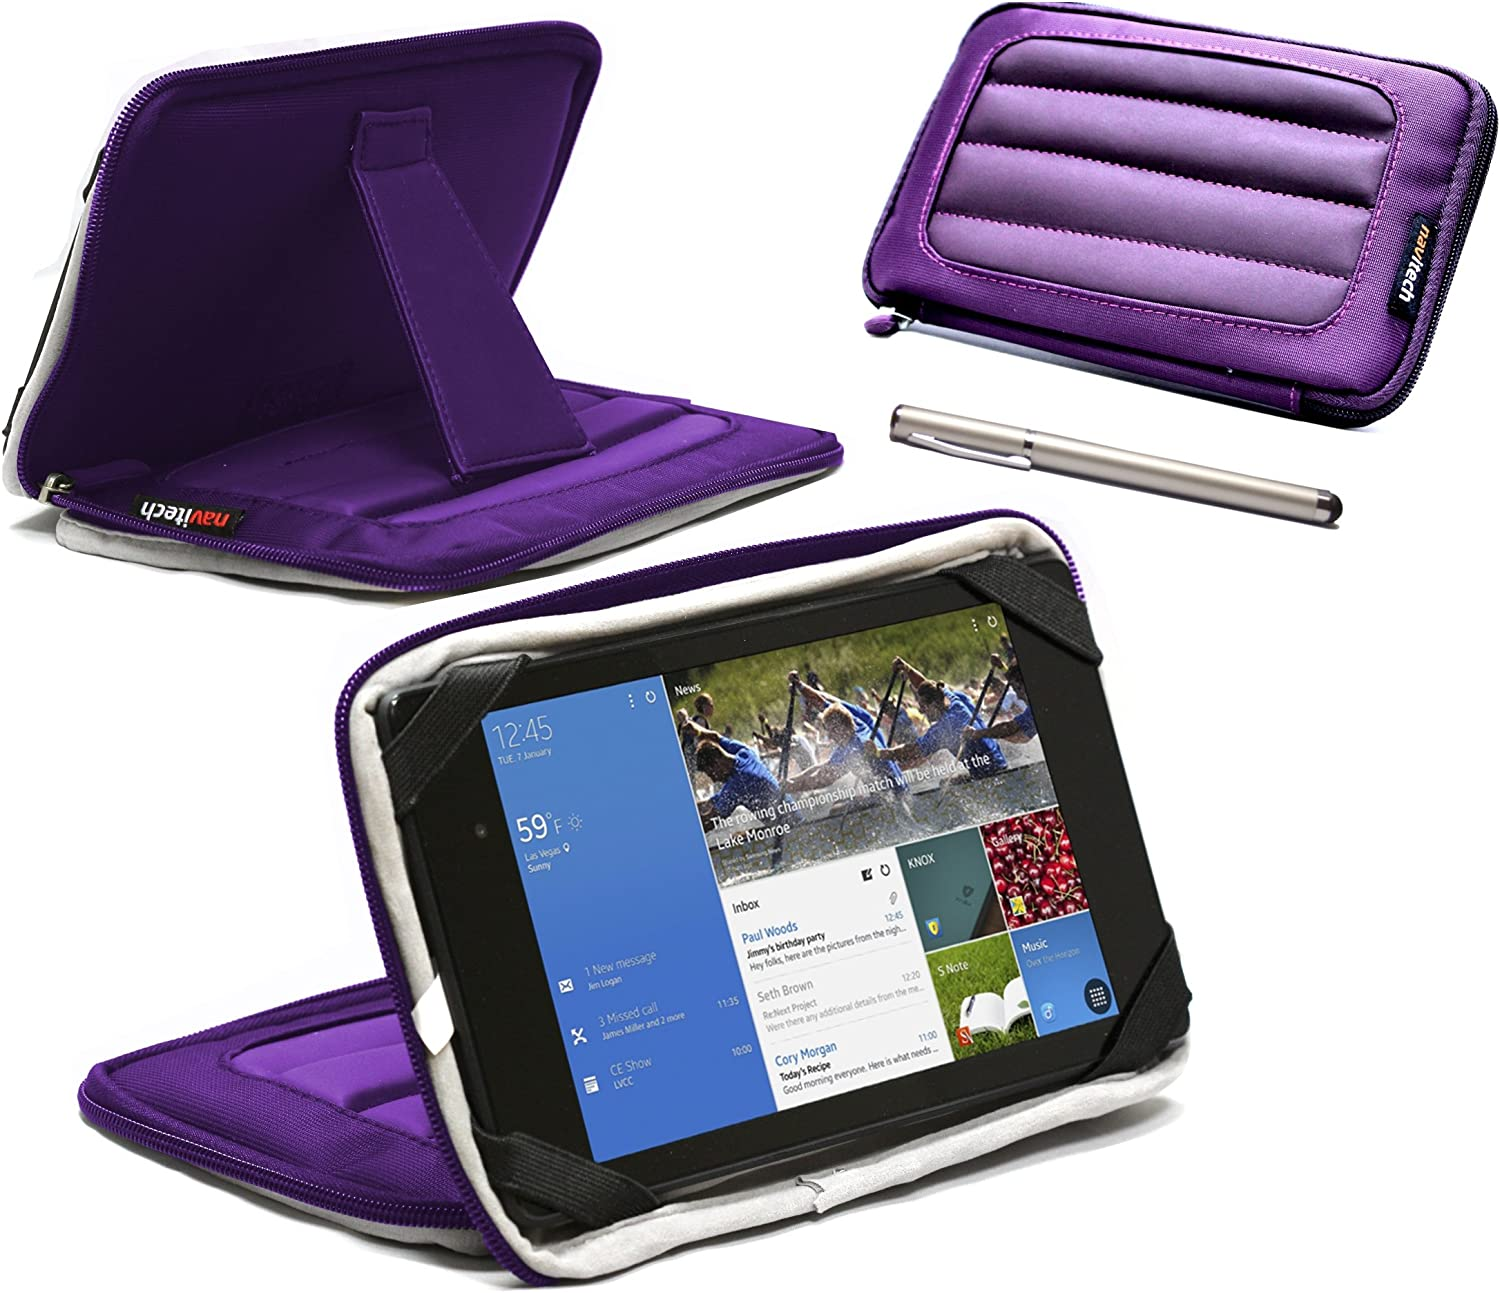 Navitech Purple 7 inch Neoprene Case Cover Sleeve with Stand & Stylus Pen Compatible with The Acer Iconia One 7 / Acer Iconia B1-720 / Acer Iconia Tab 7 A1-713 / Acer Iconia Tab 7 A1-713HD